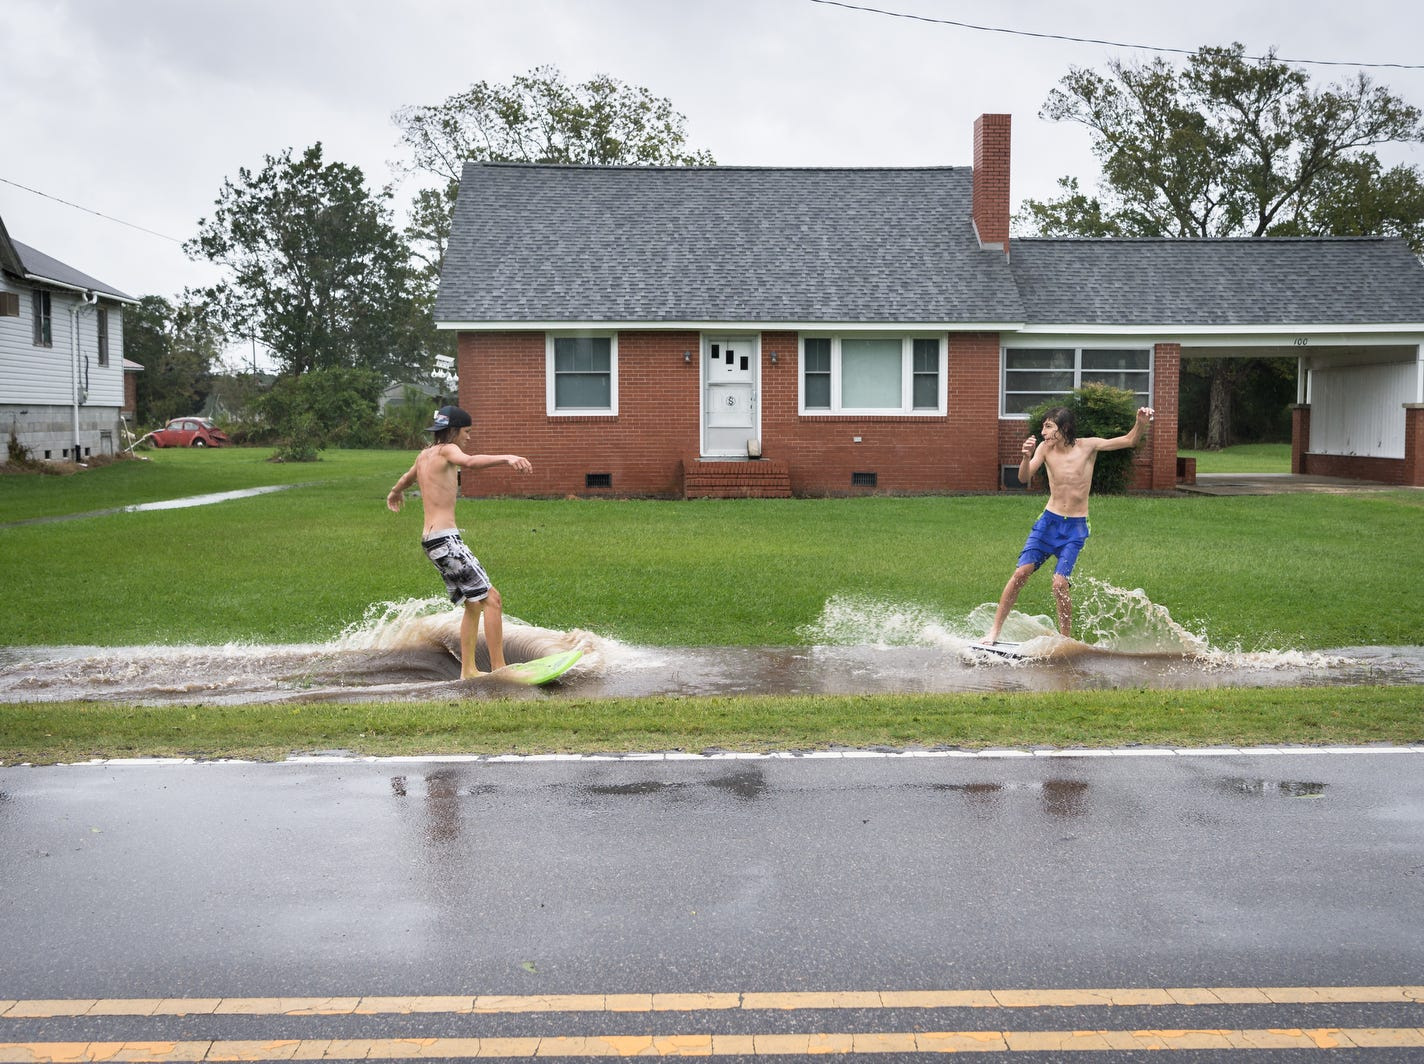 Deacon Etheridge, 14, left and Fortino Beltran, also 14, surf on a large puddle on Main Street in Swan Quarter, N.C.